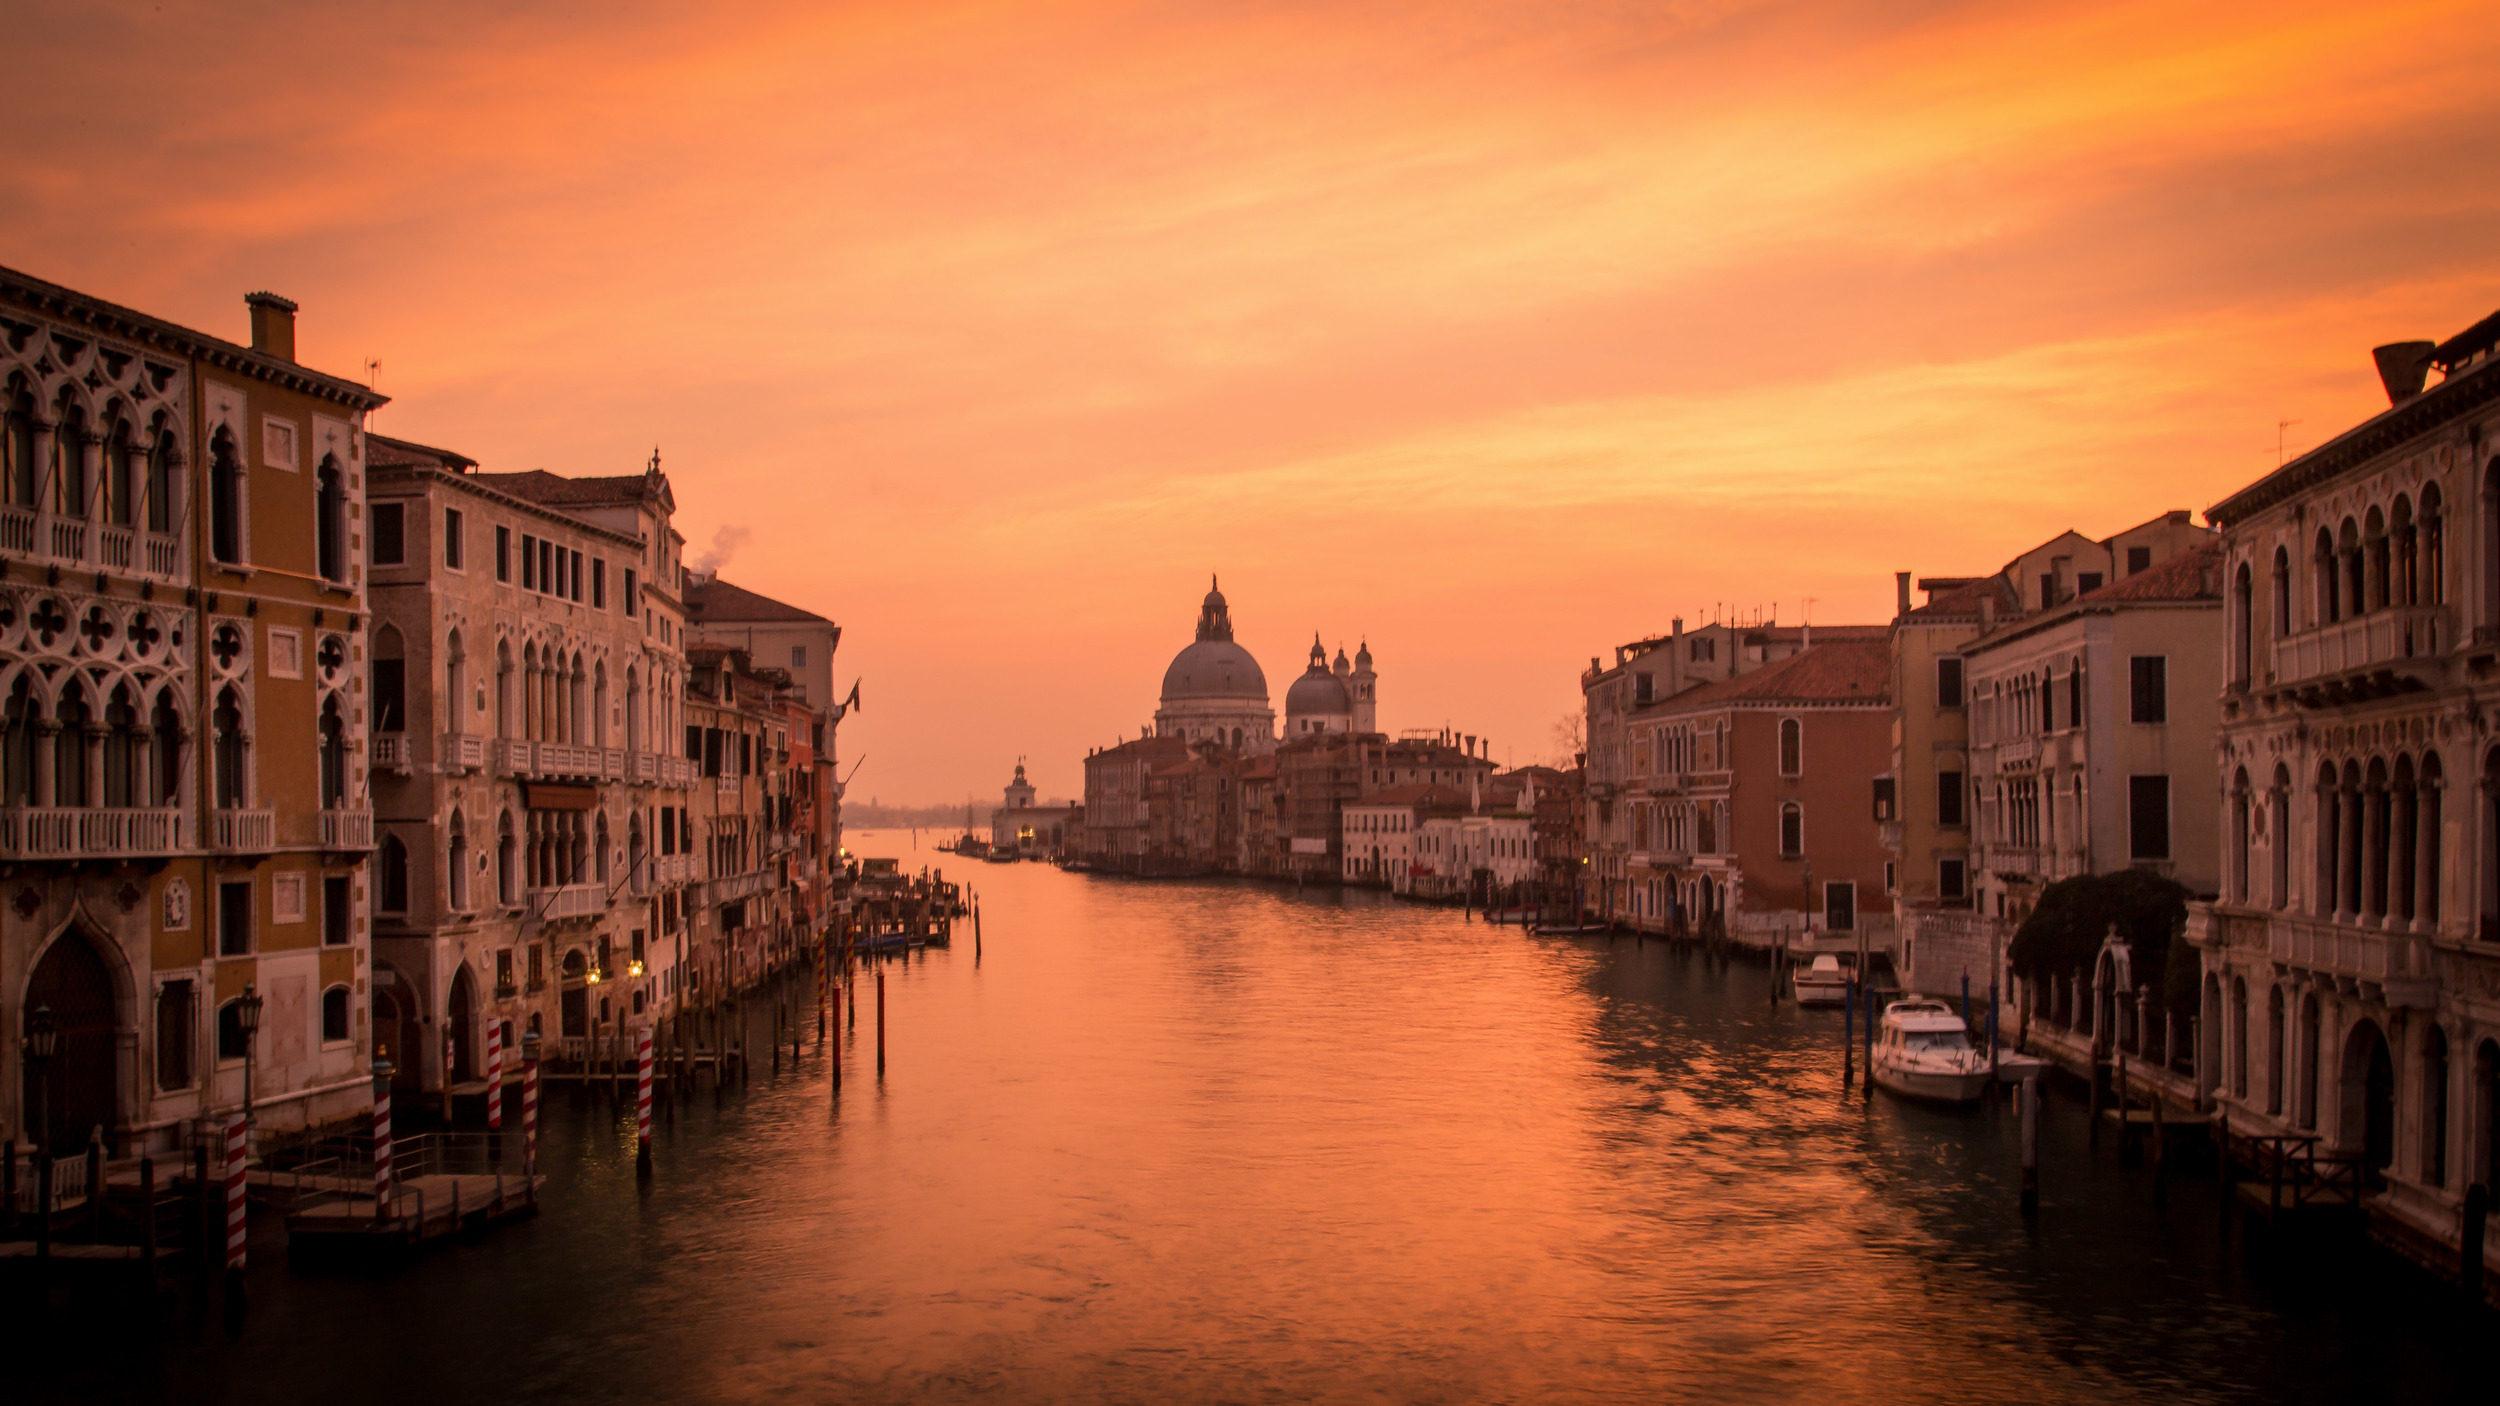 The view from Academia Bridge at Sunrise - 6d - 24-105 @ 28mm -f22/ 1 sec / iso 100